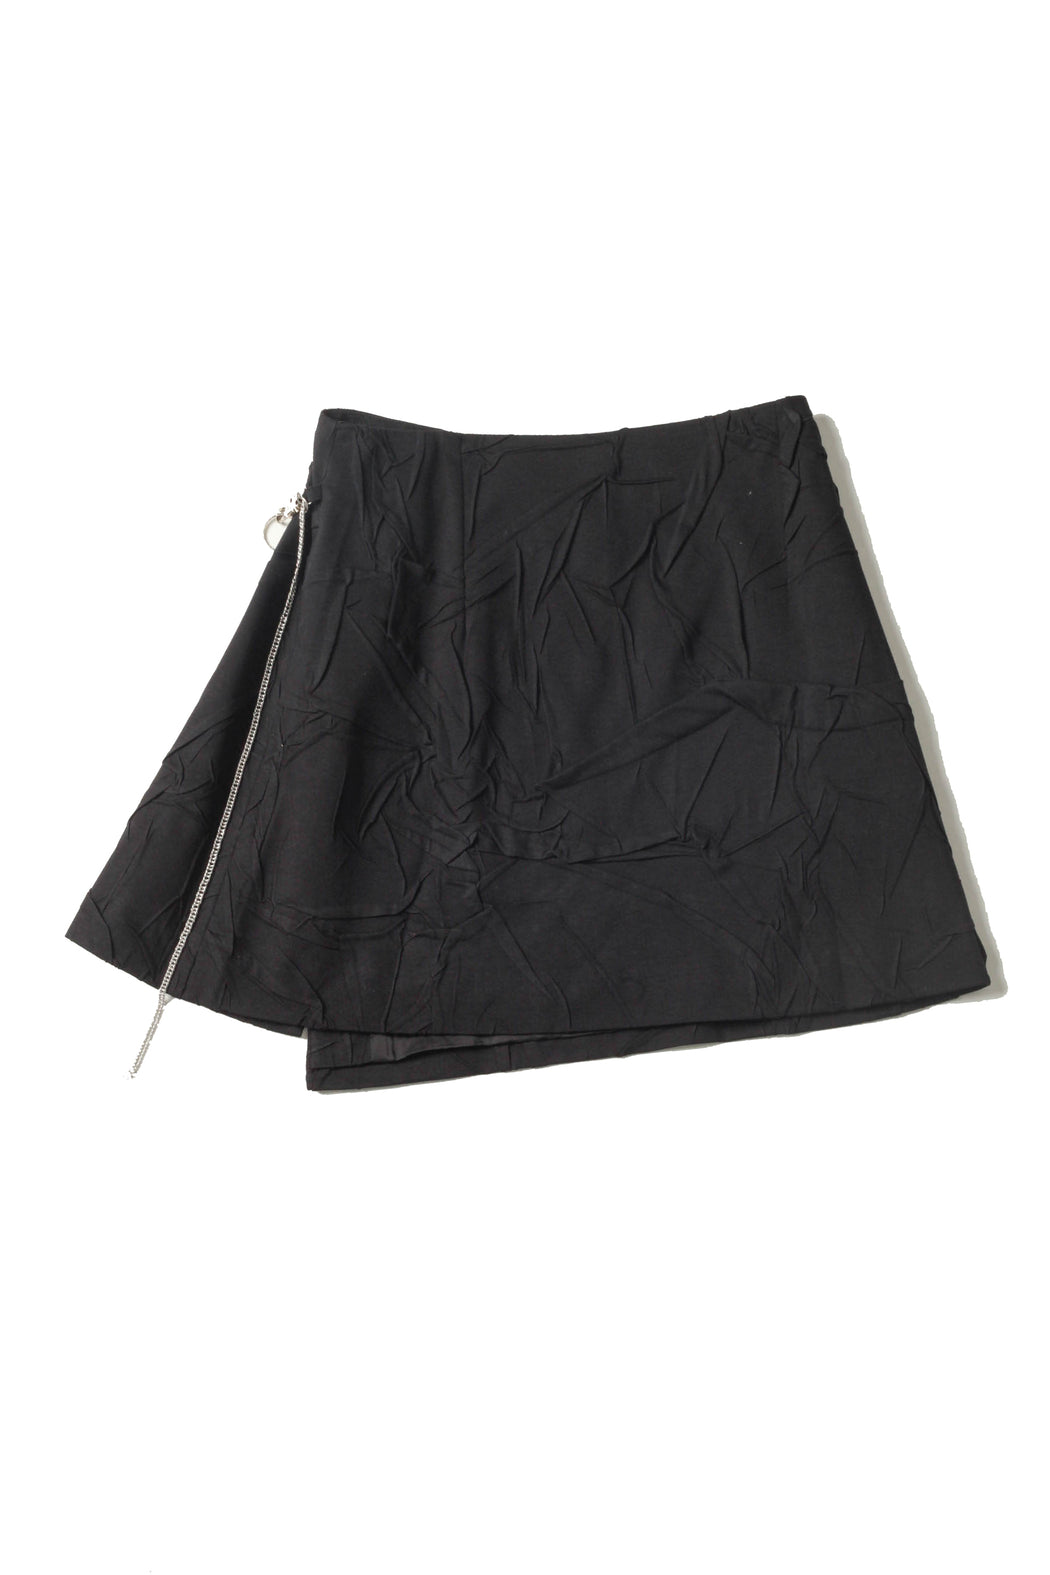 Madou - Black Double Sided Skirt